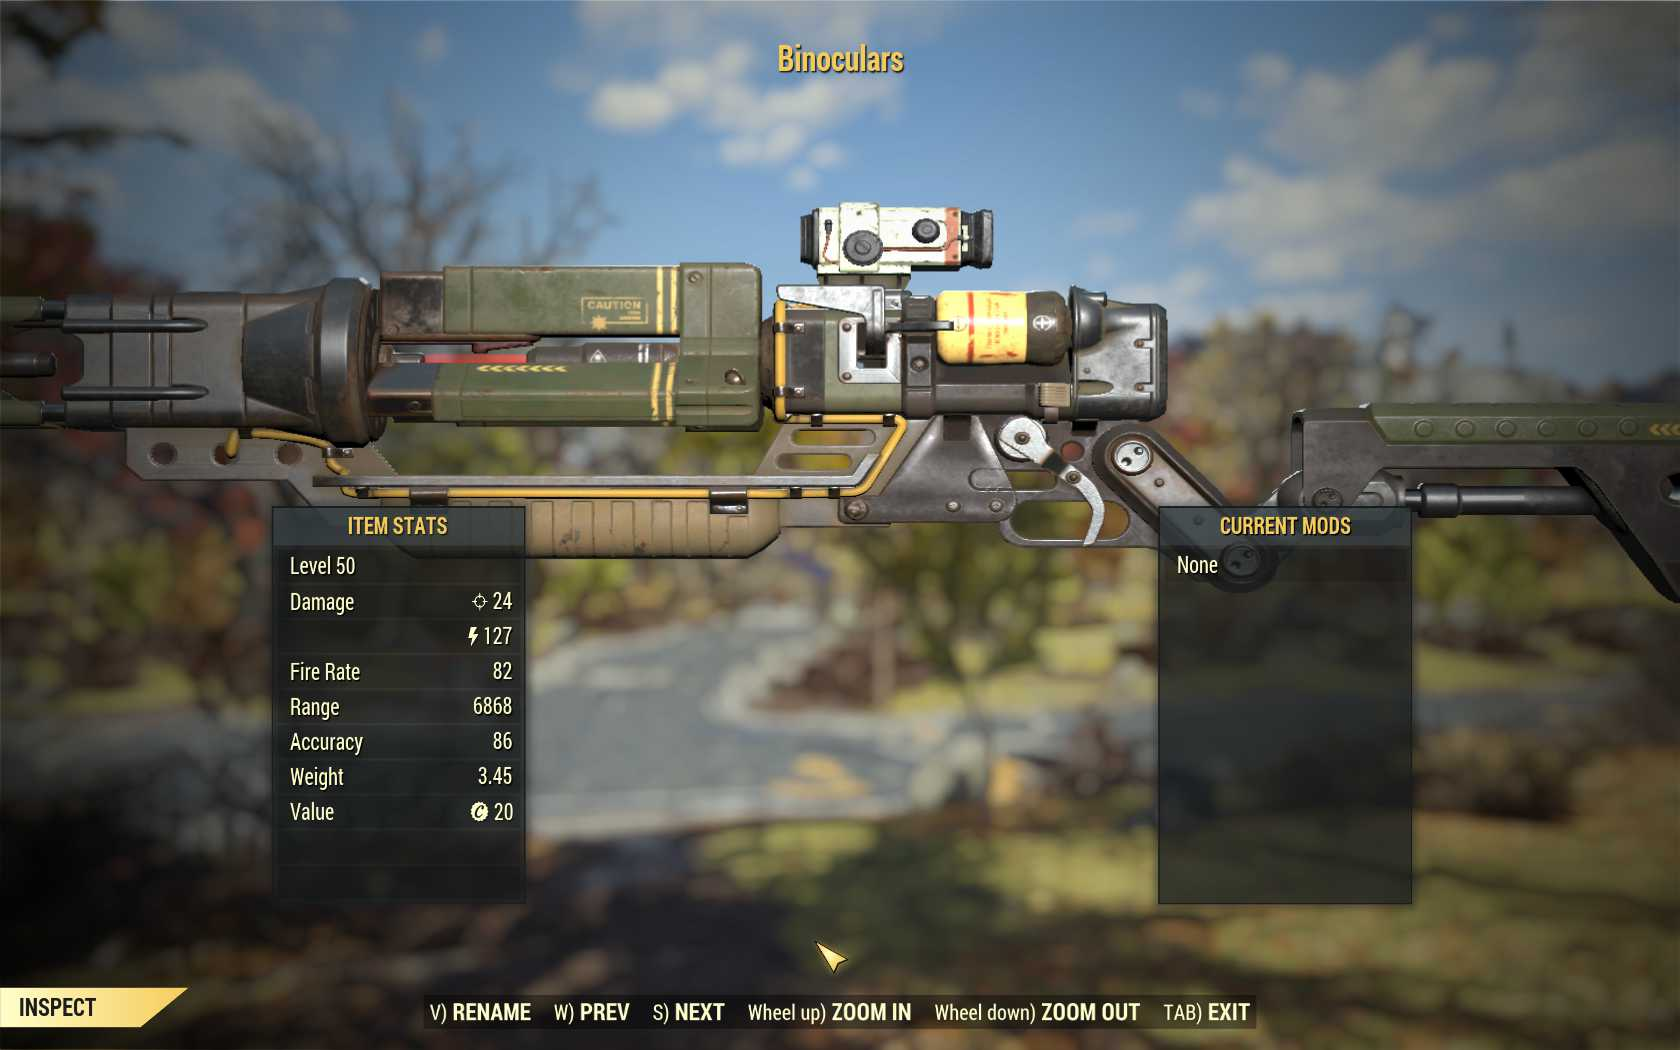 [Glitched weapon] Laser Rifle (Unlimited & Unbreakable)